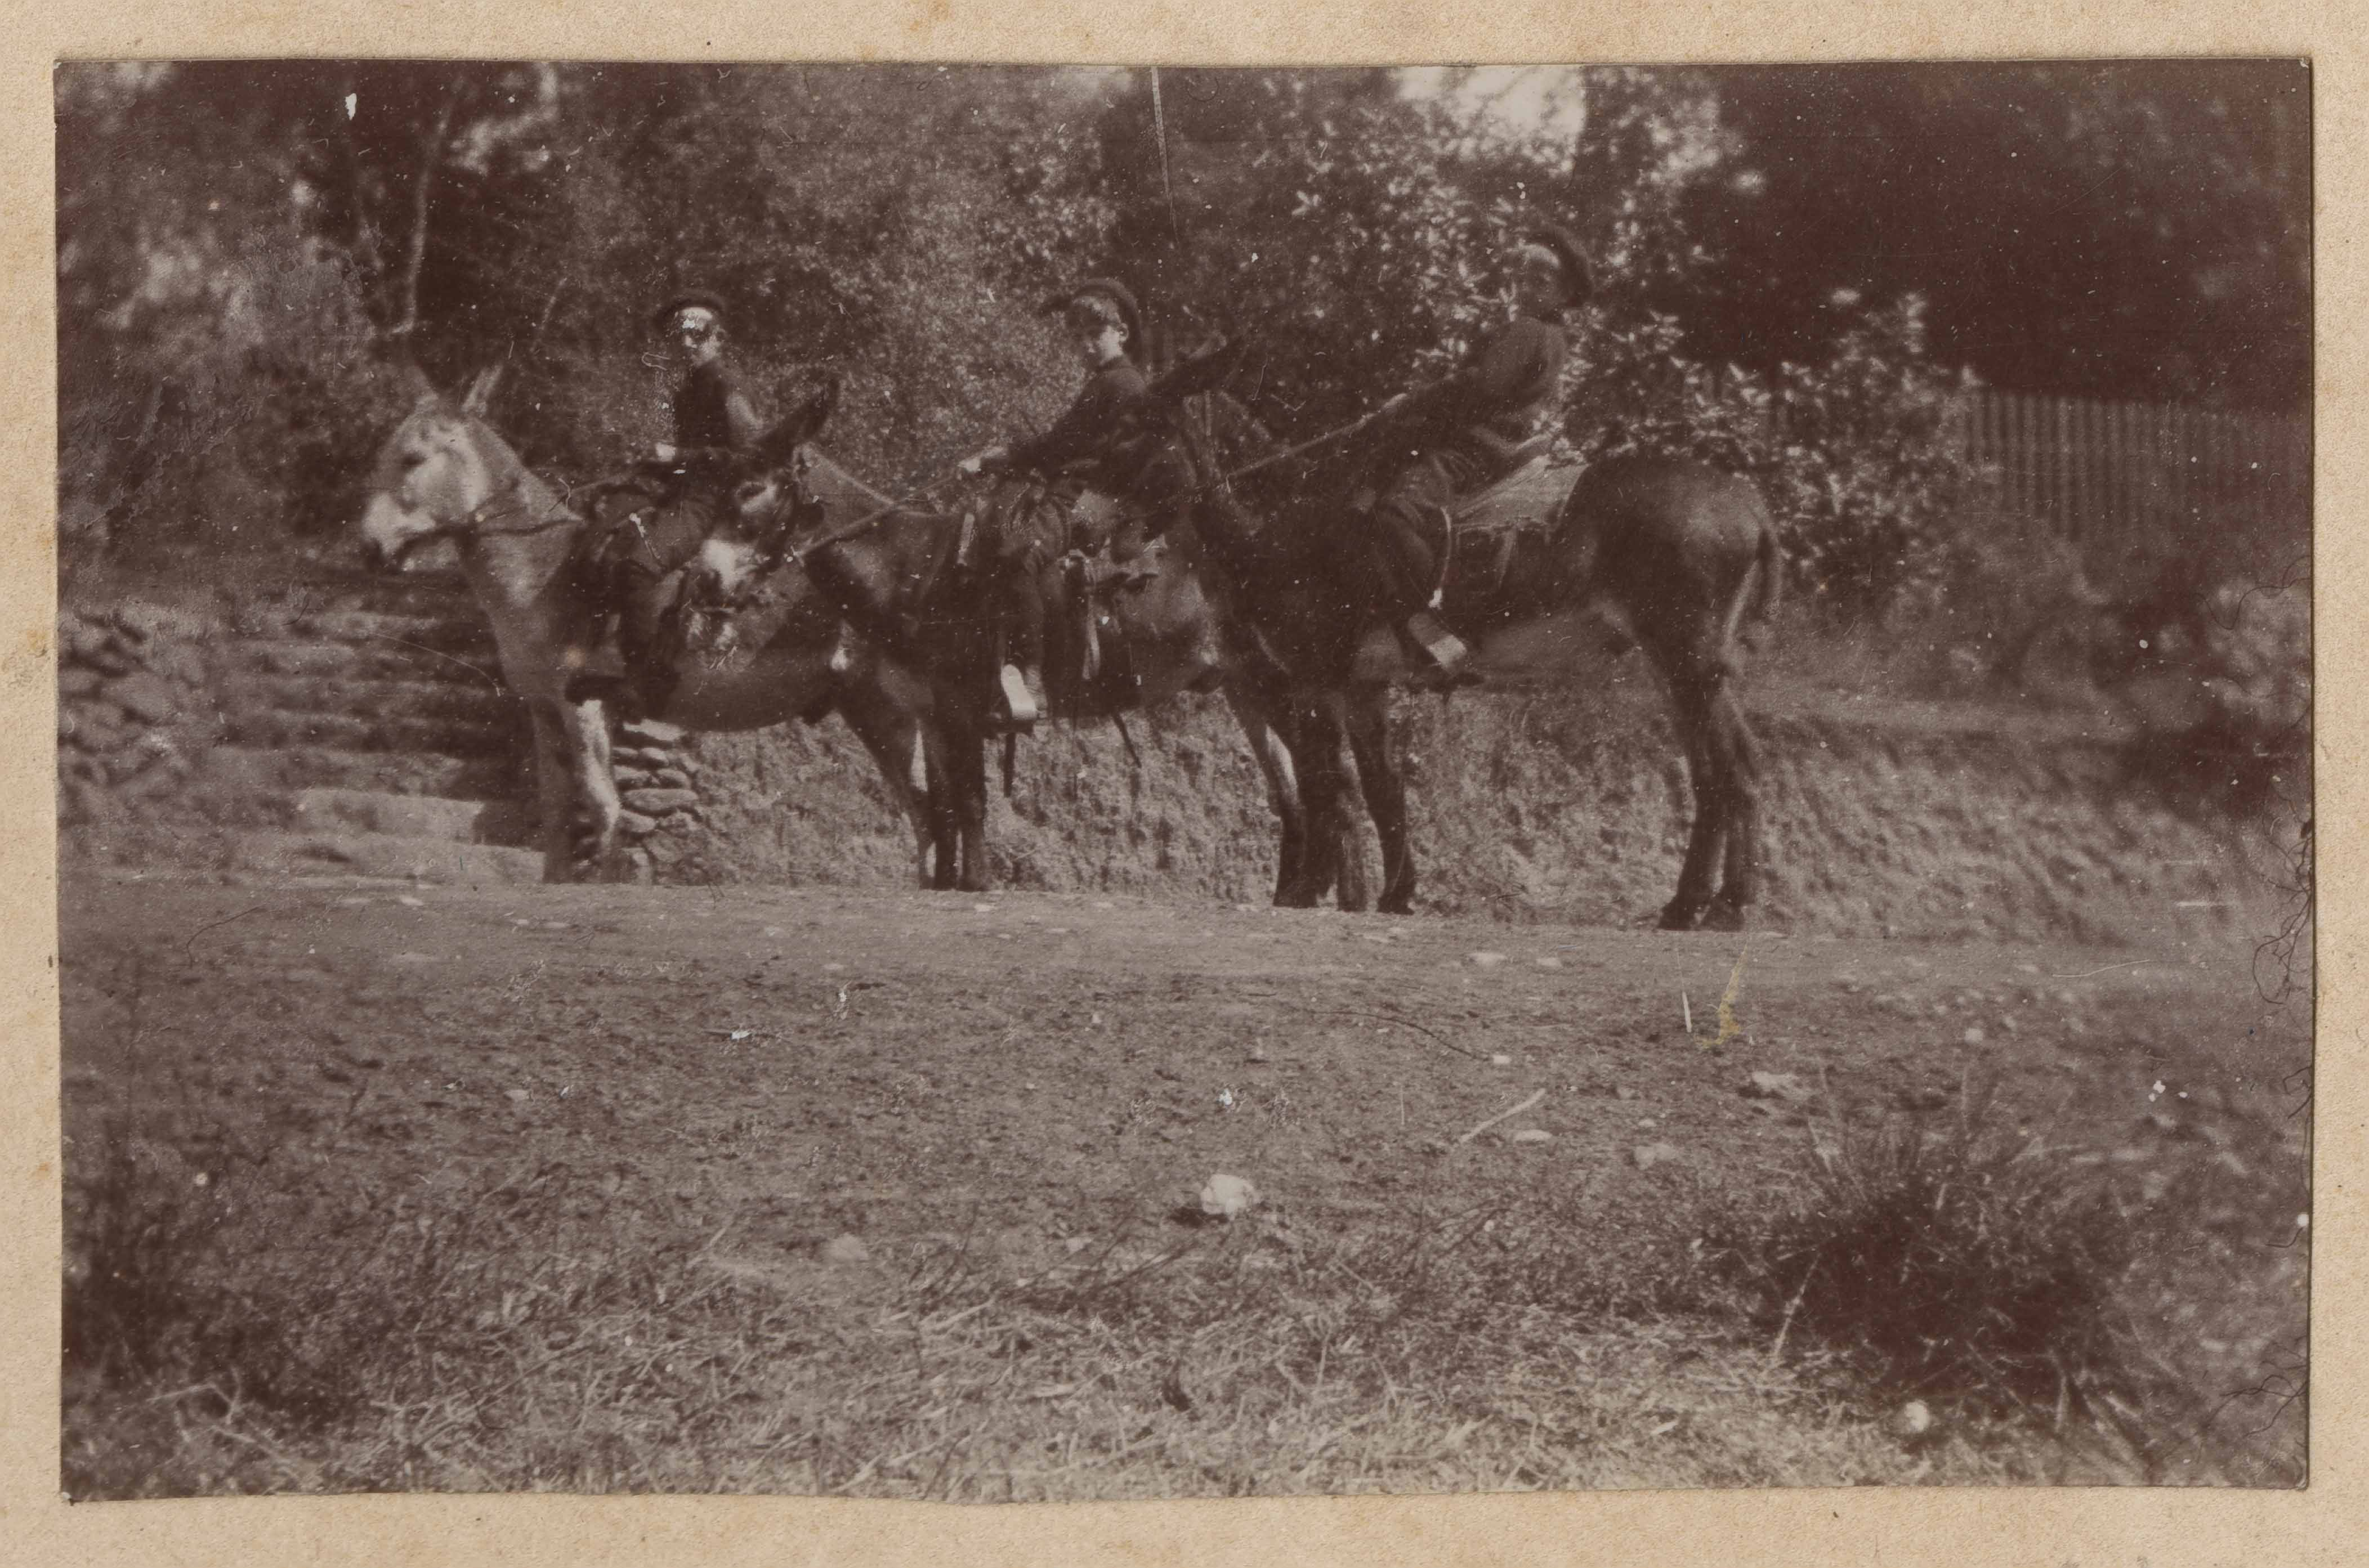 Two people astride mules